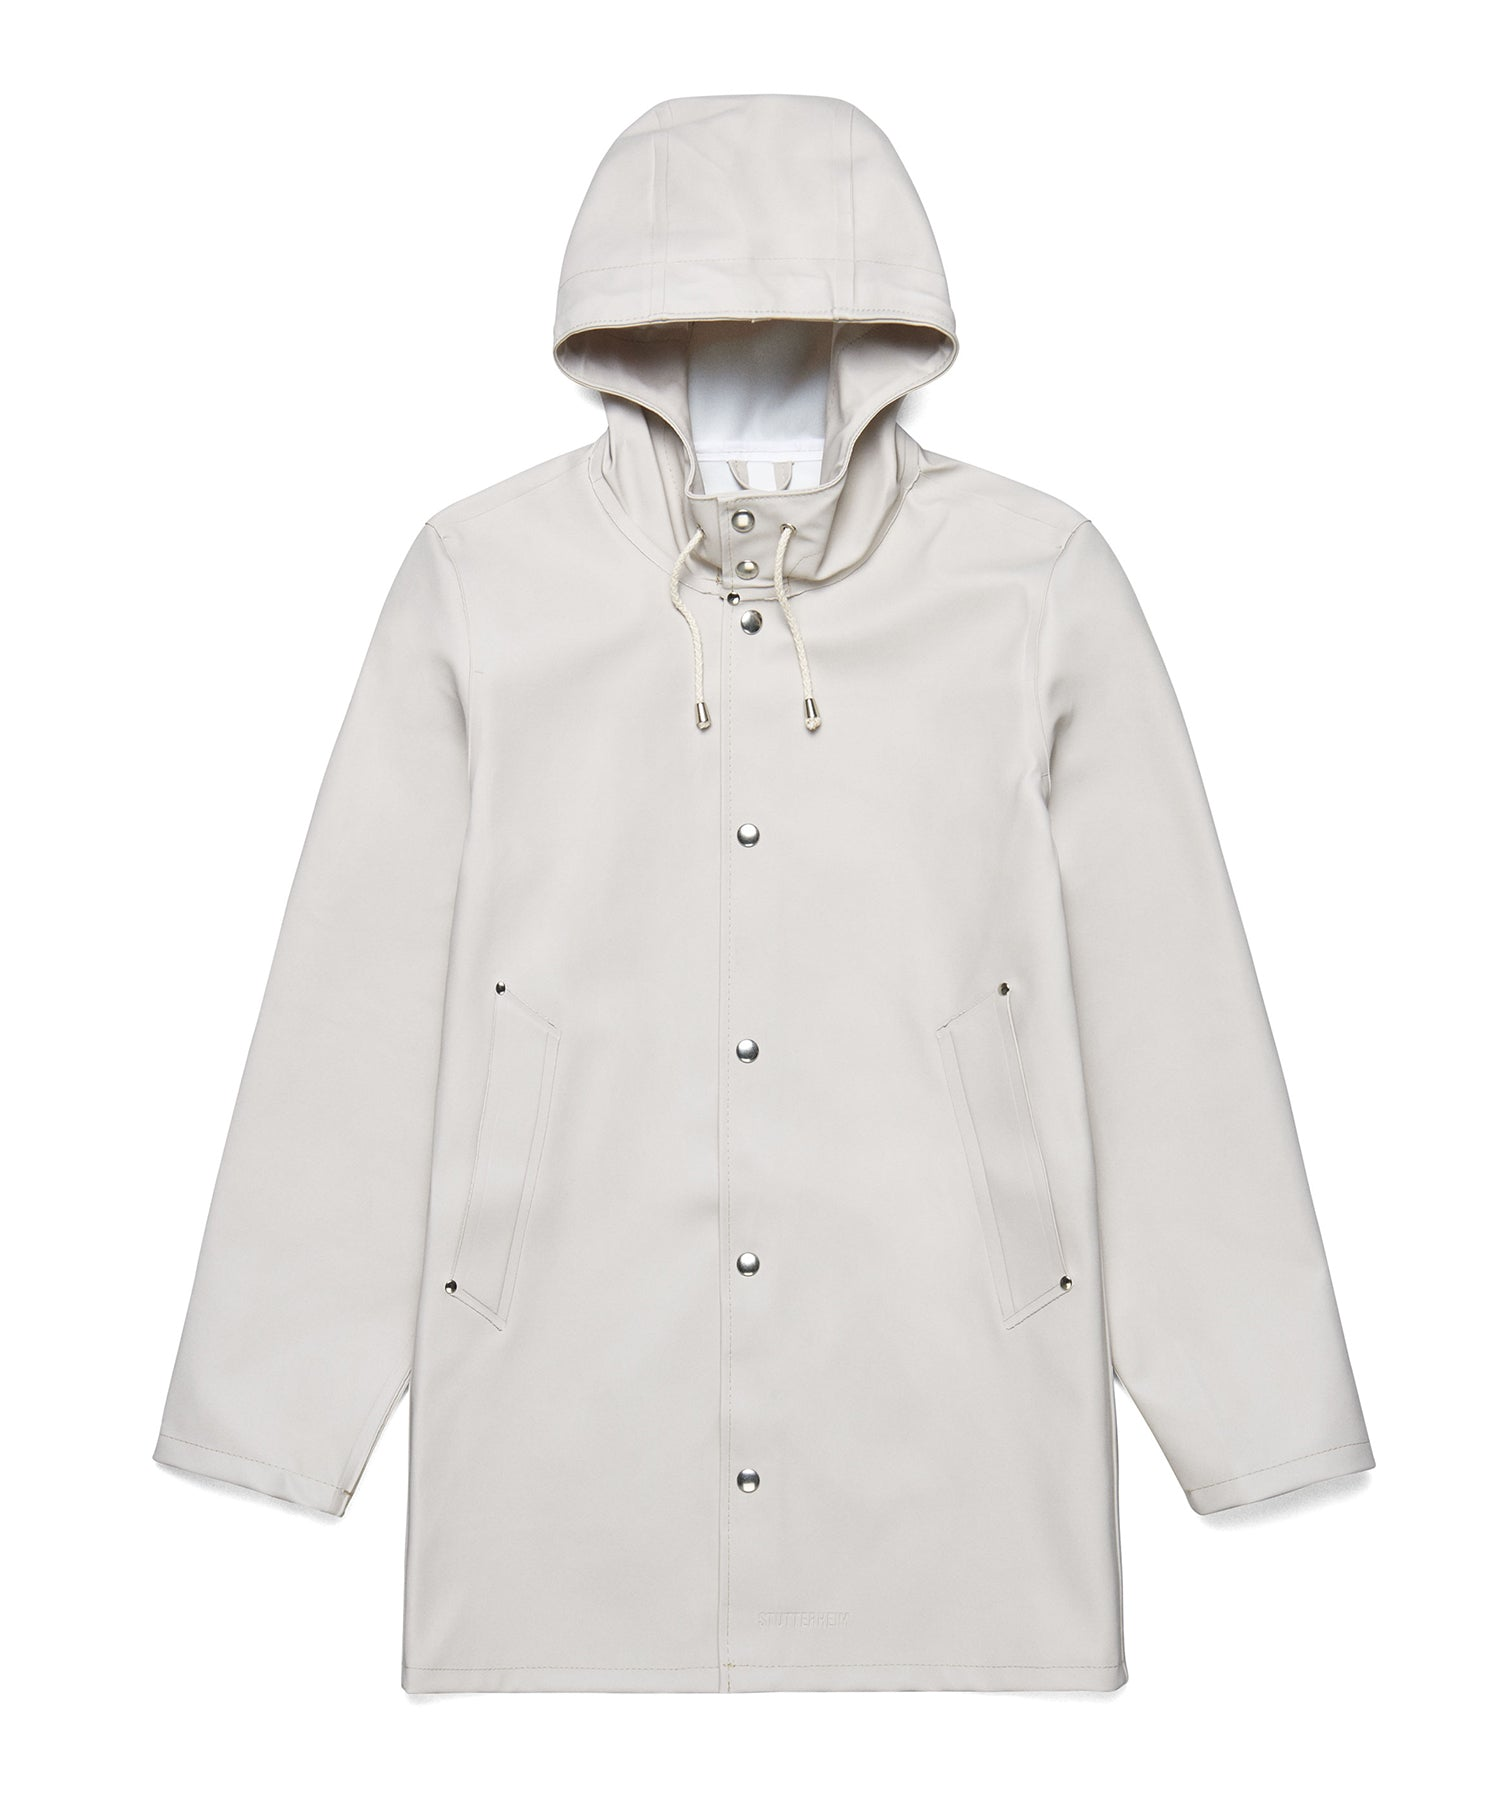 Stutterheim Stockholm Basic Raincoat Light Sand